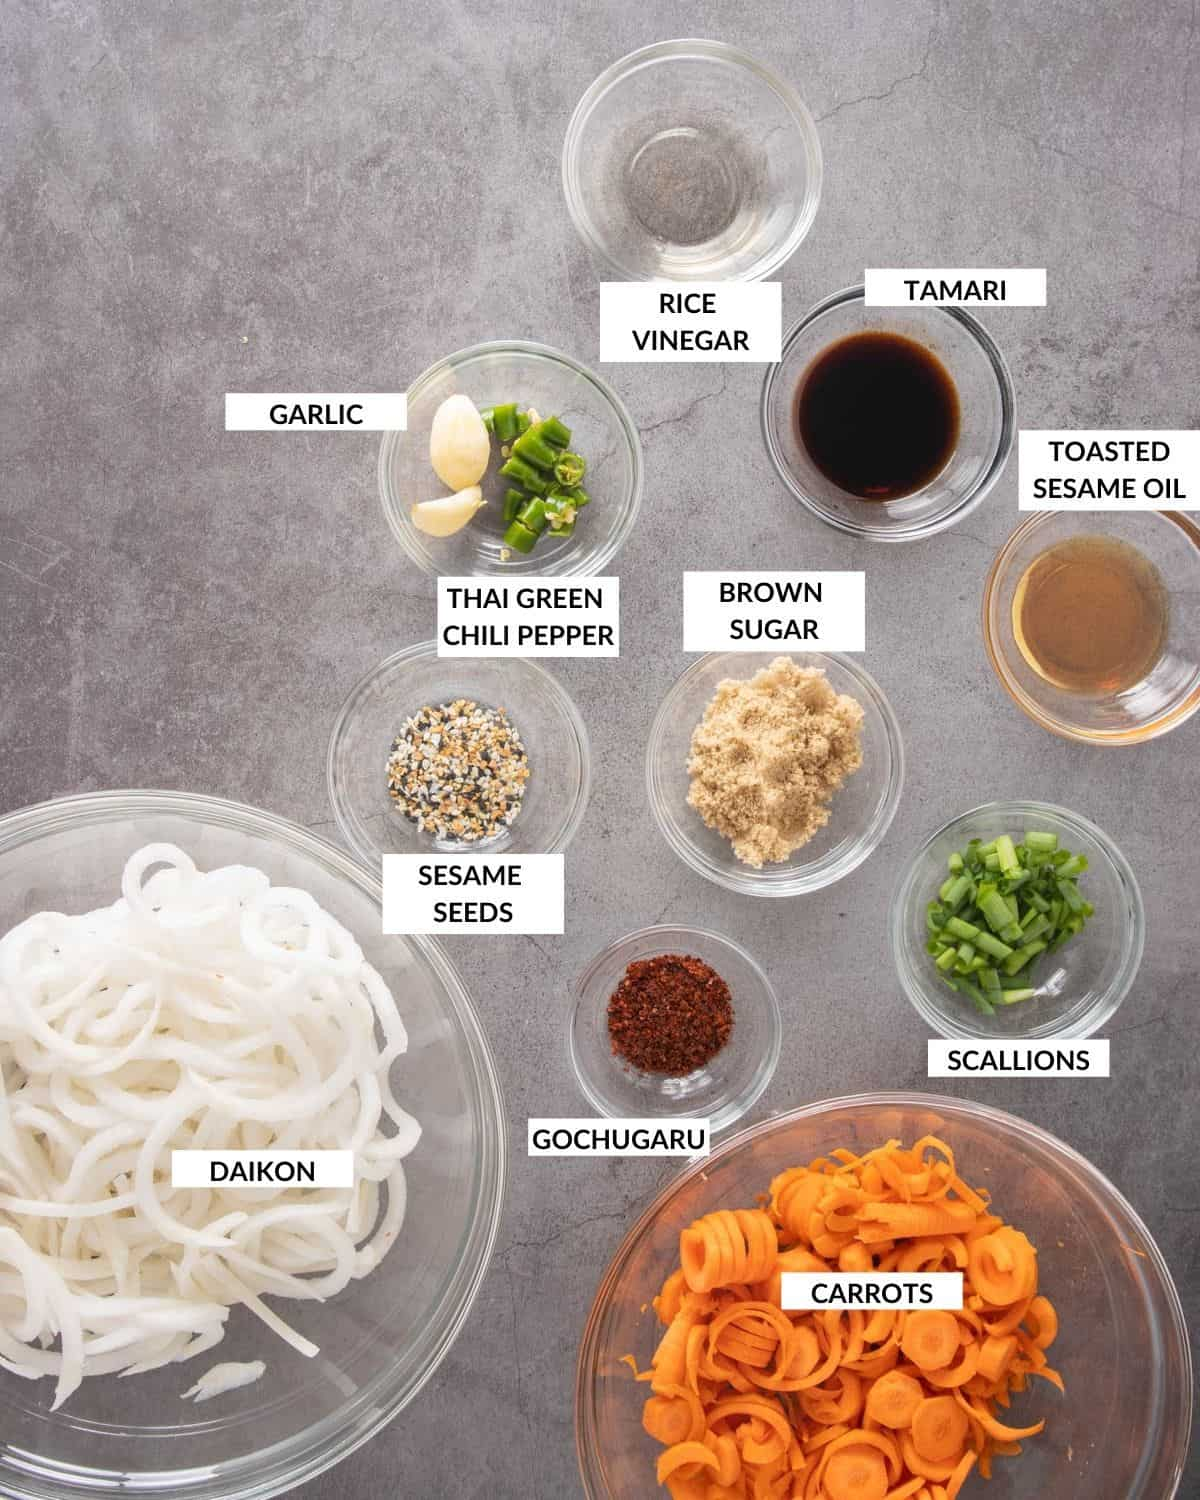 Labeled ingredient list for the recipe - check recipe card for actual details and quantities.